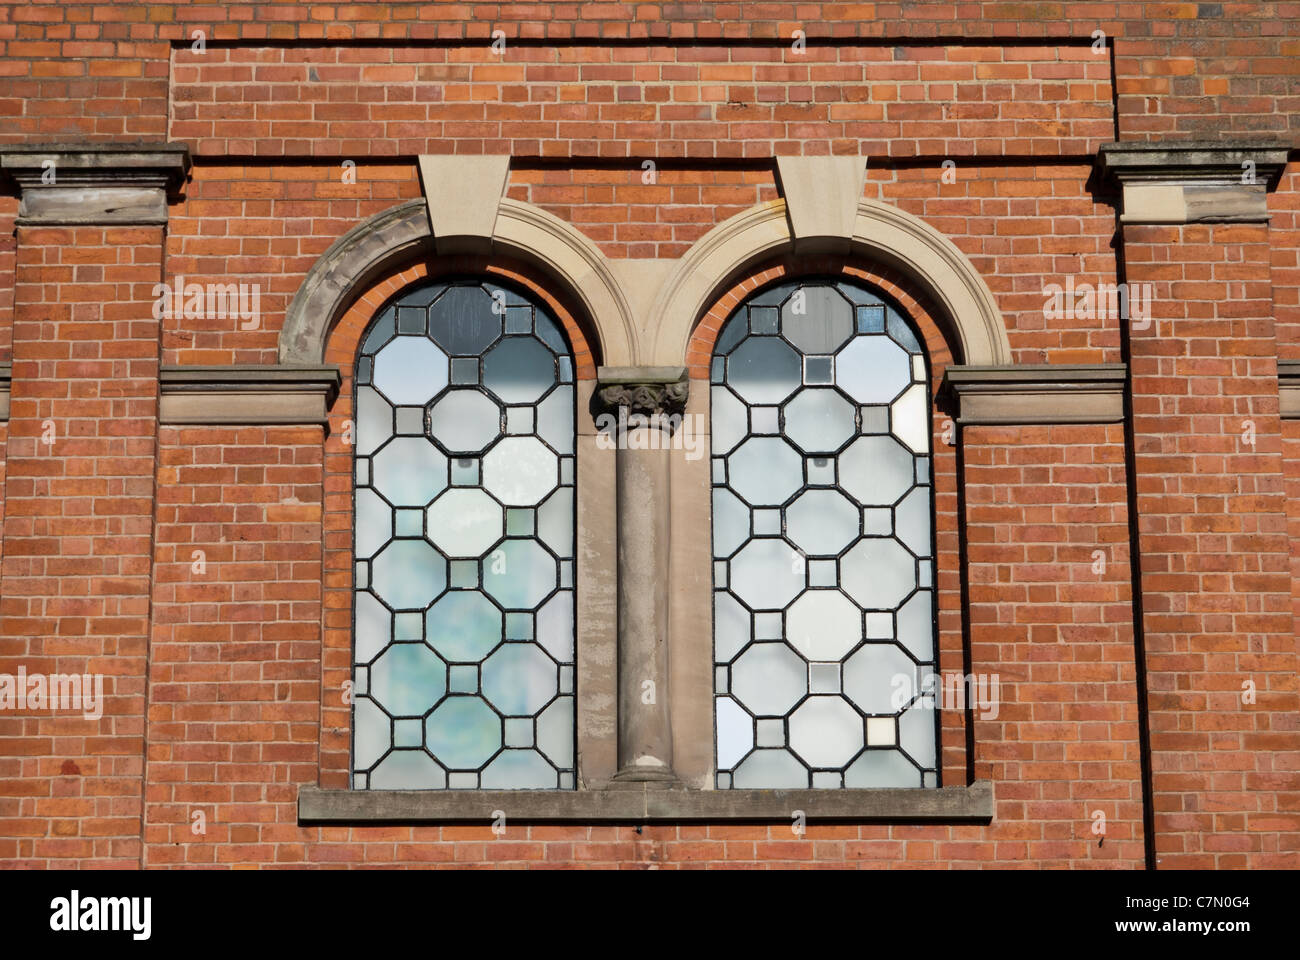 Lead windows in a red brick building - Stock Image